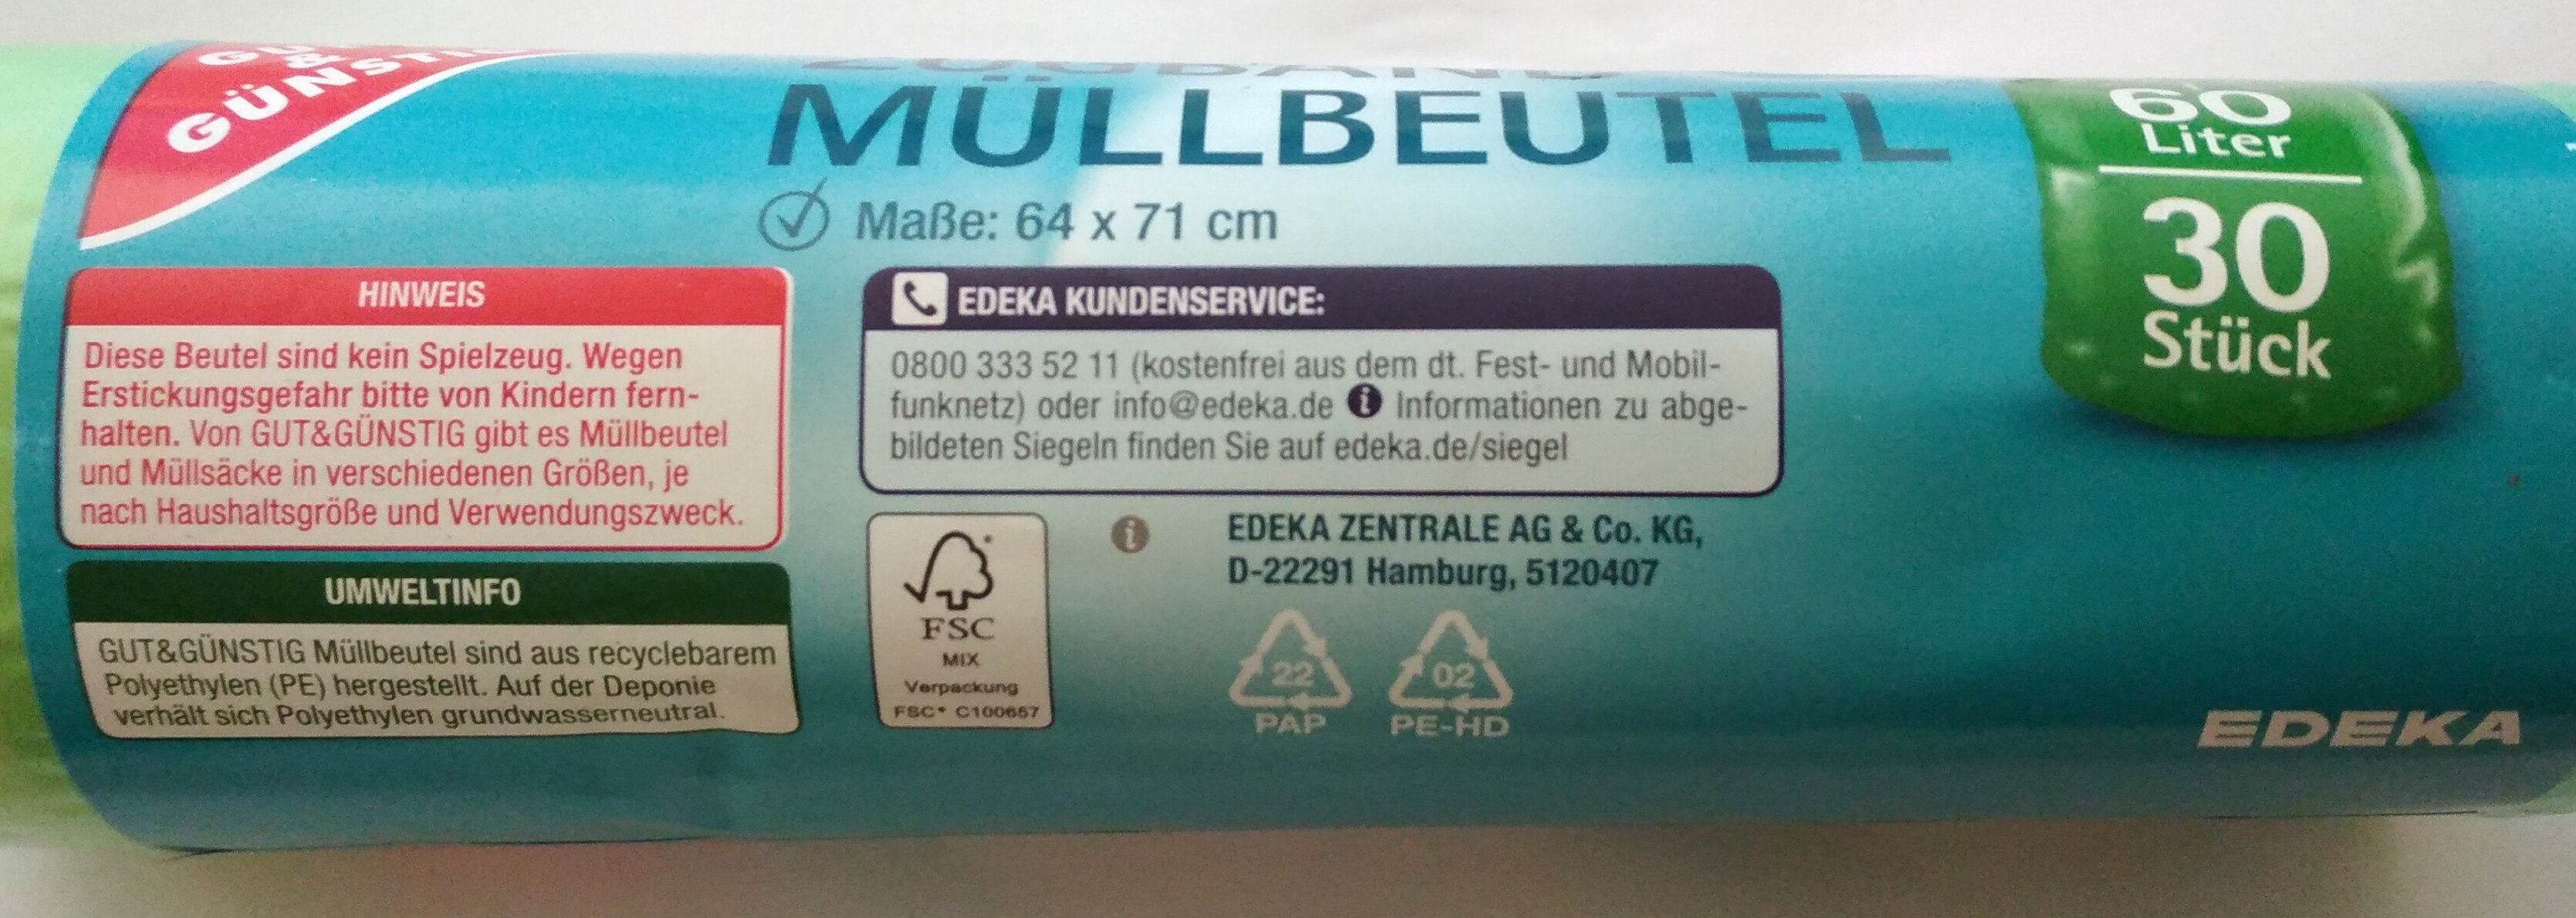 Zugband Müllbeutel - Ingredients - de